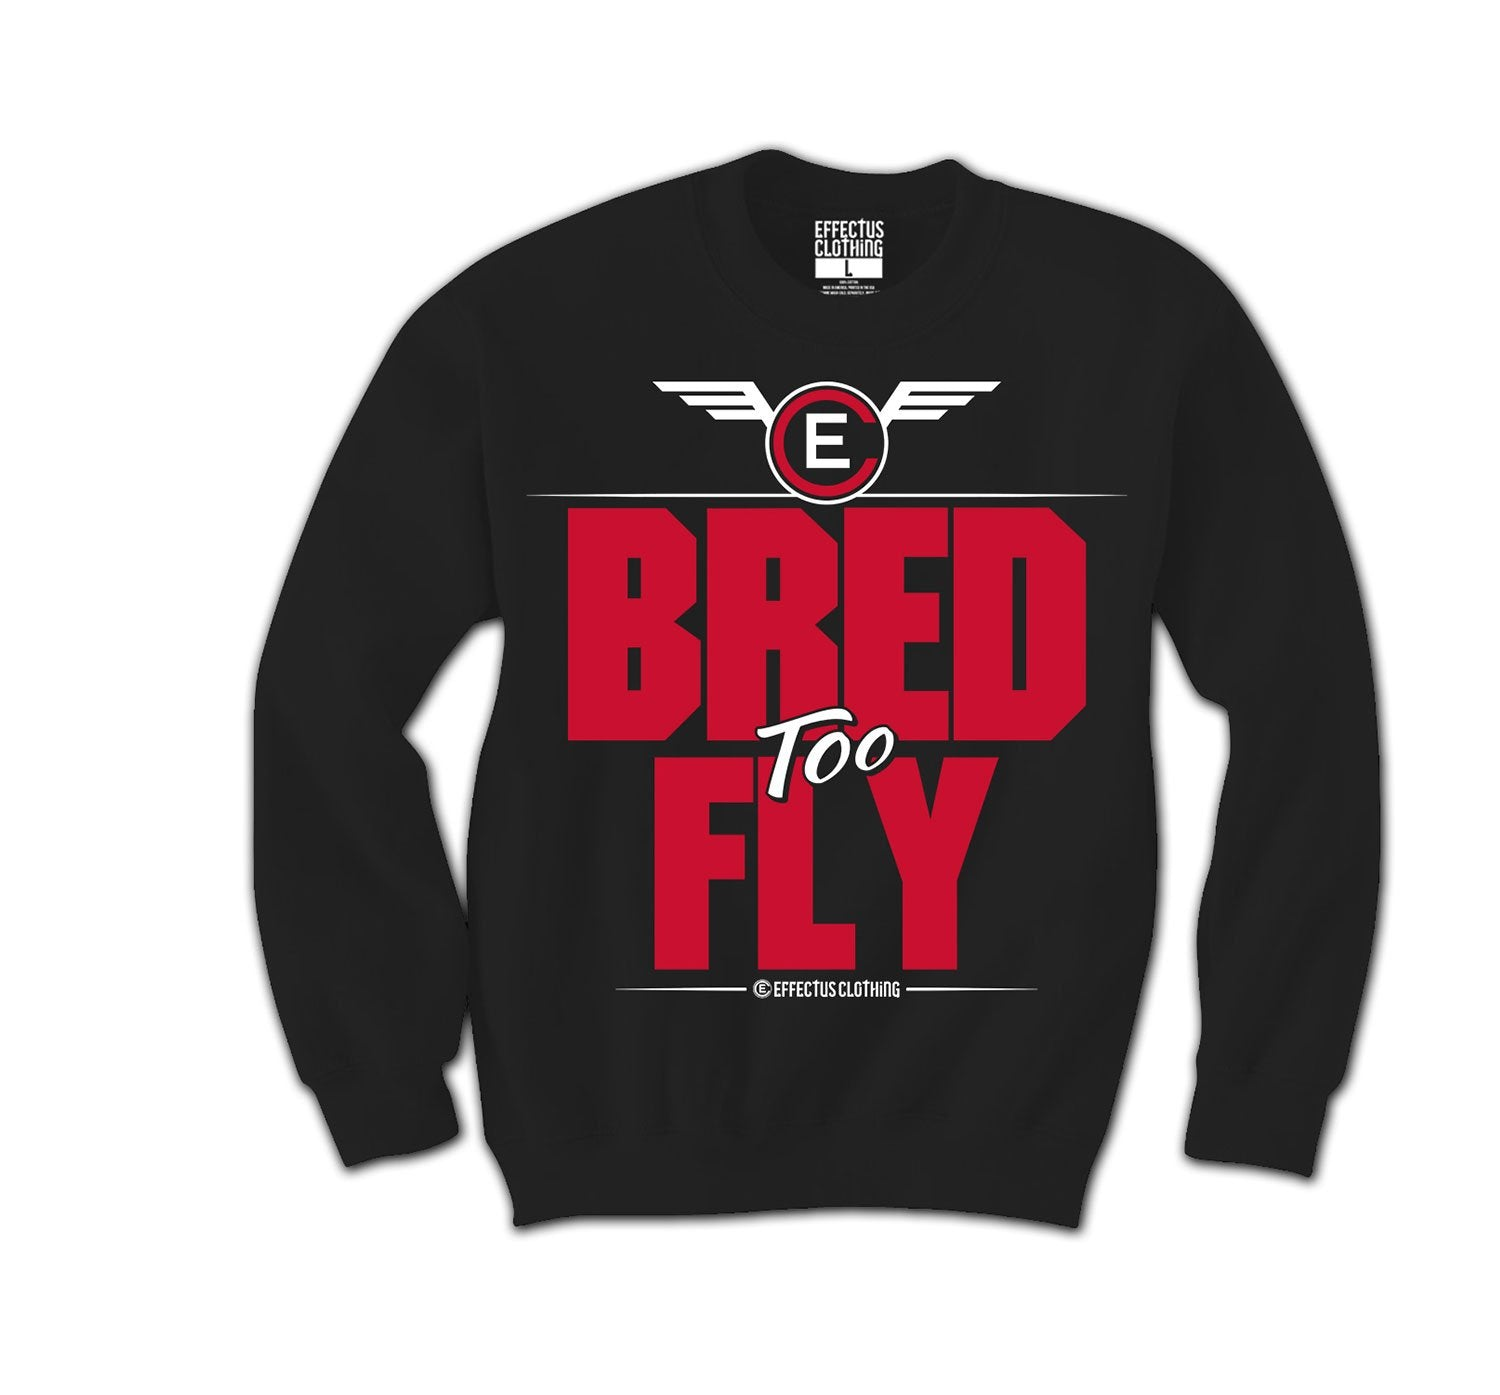 Retro 11 Bred Jordan sneakers have matching crewnecks